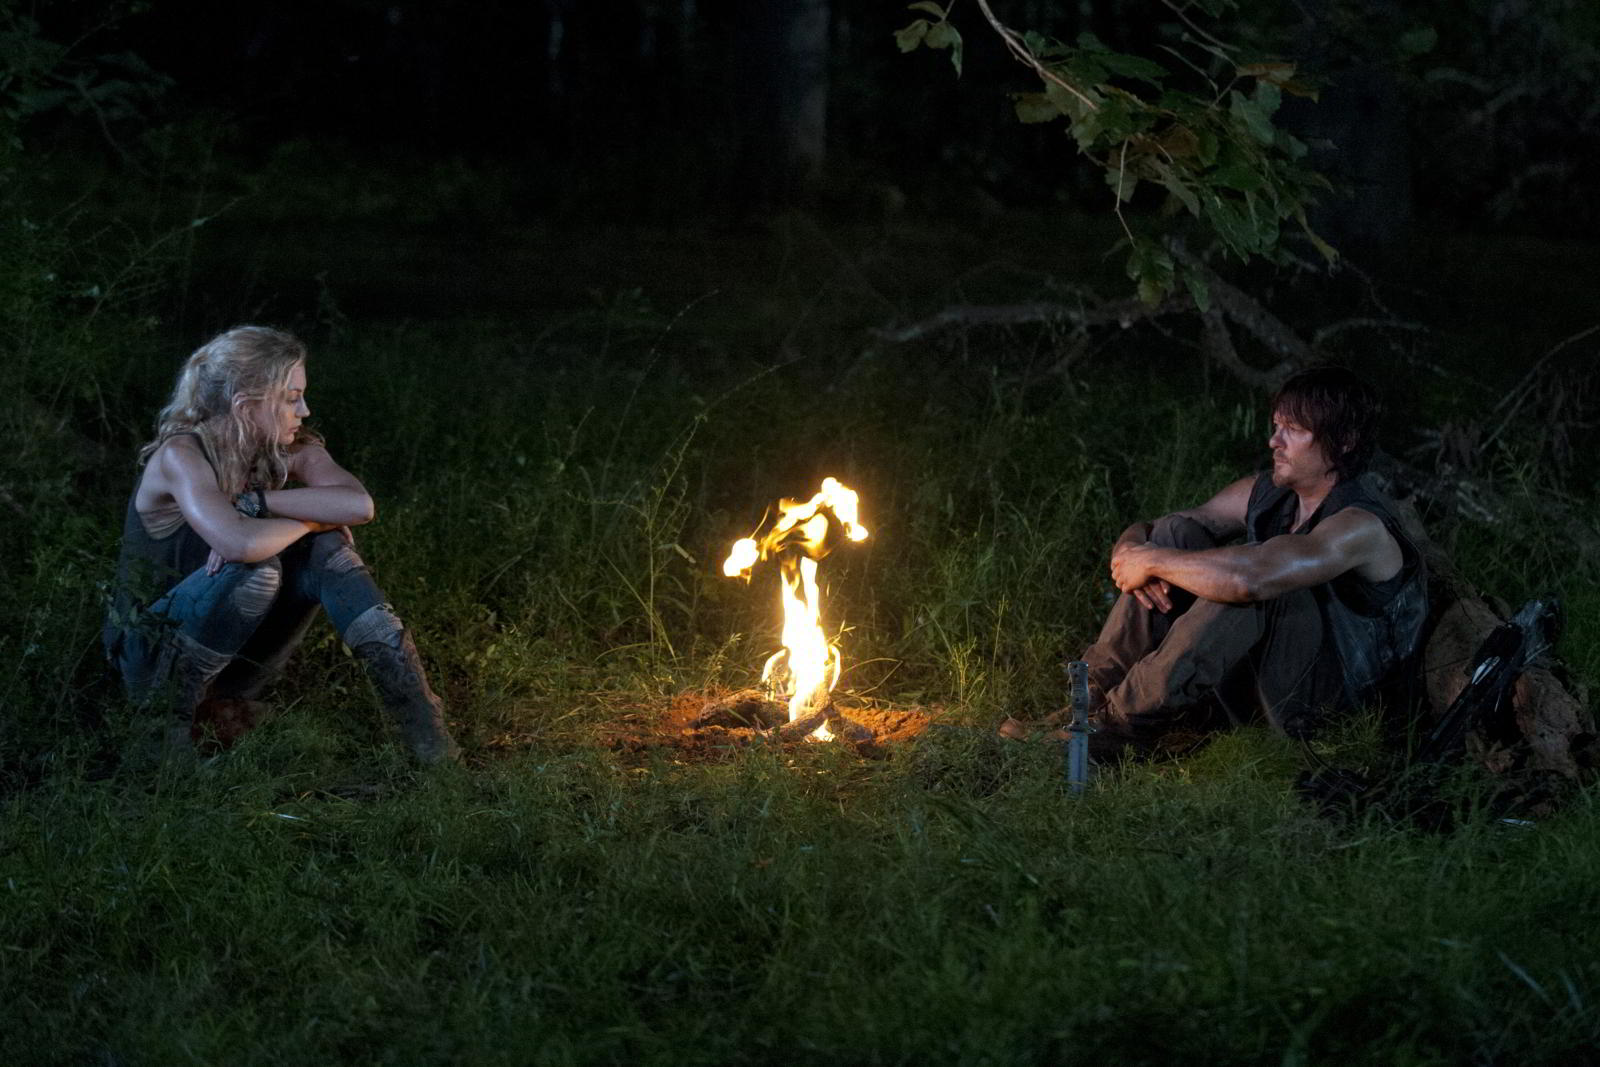 walking-dead-s4-e10-inmates-beth-and-daryl-campfire